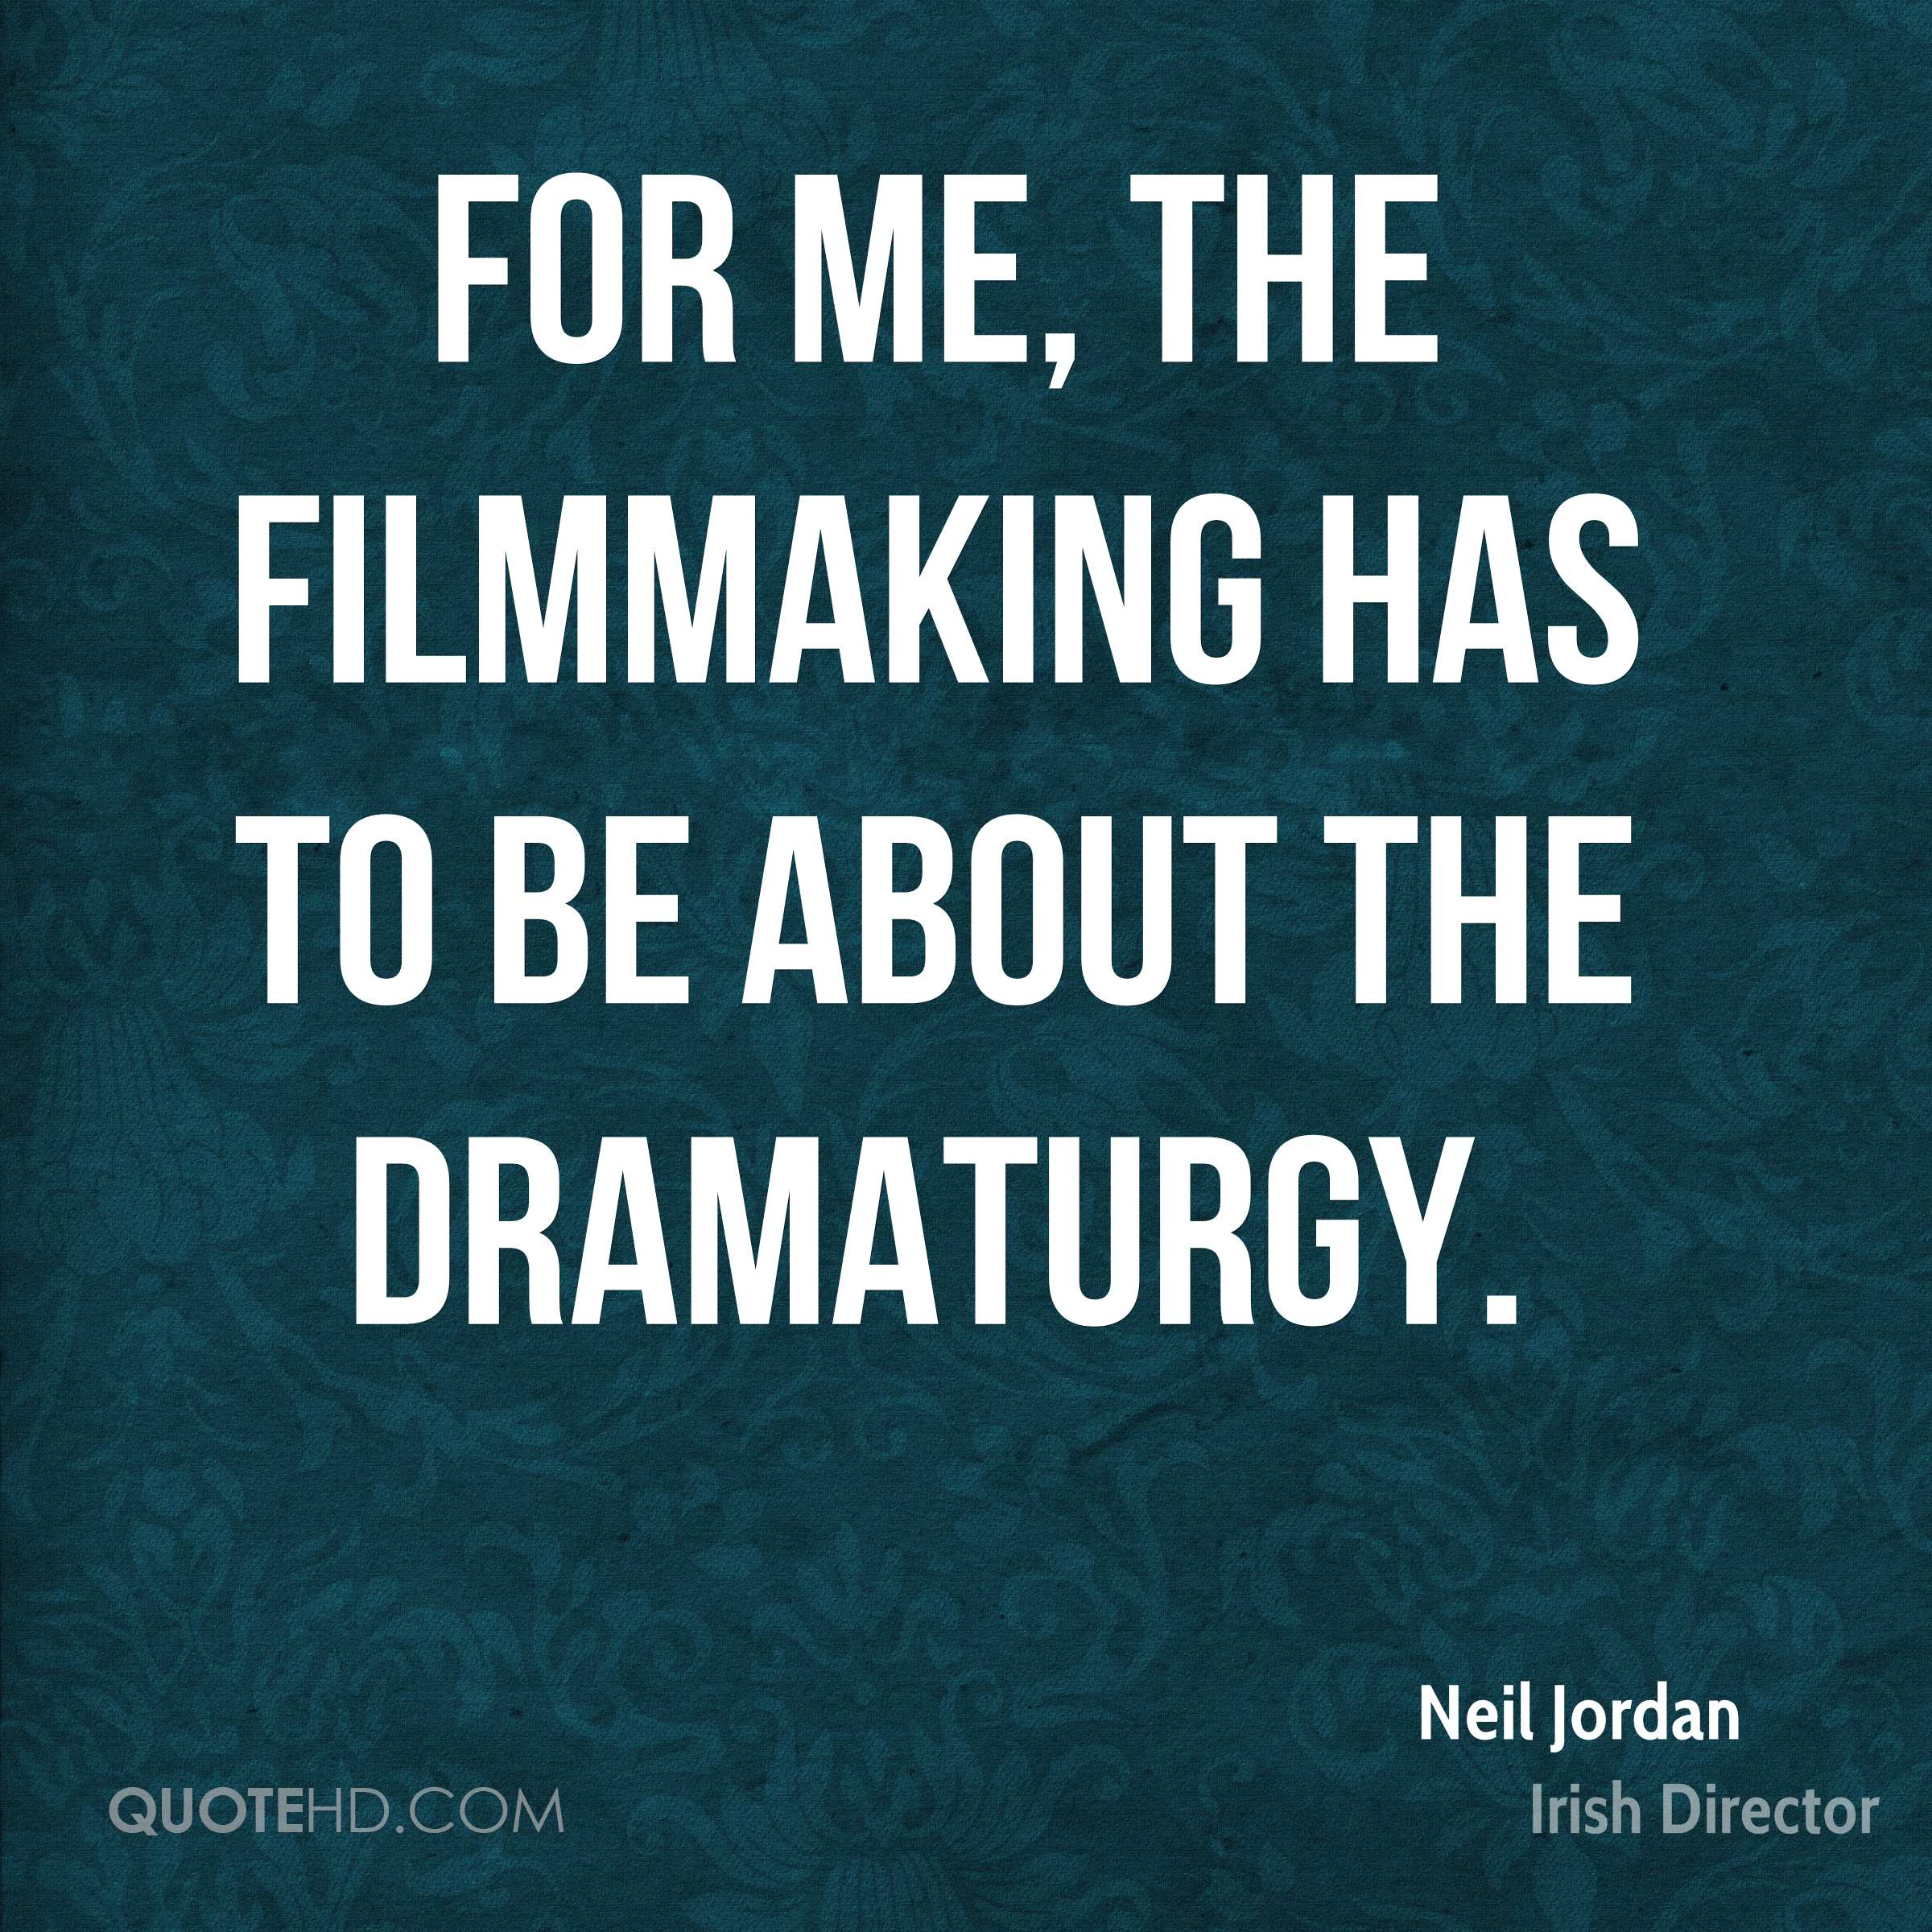 For me, the filmmaking has to be about the dramaturgy.